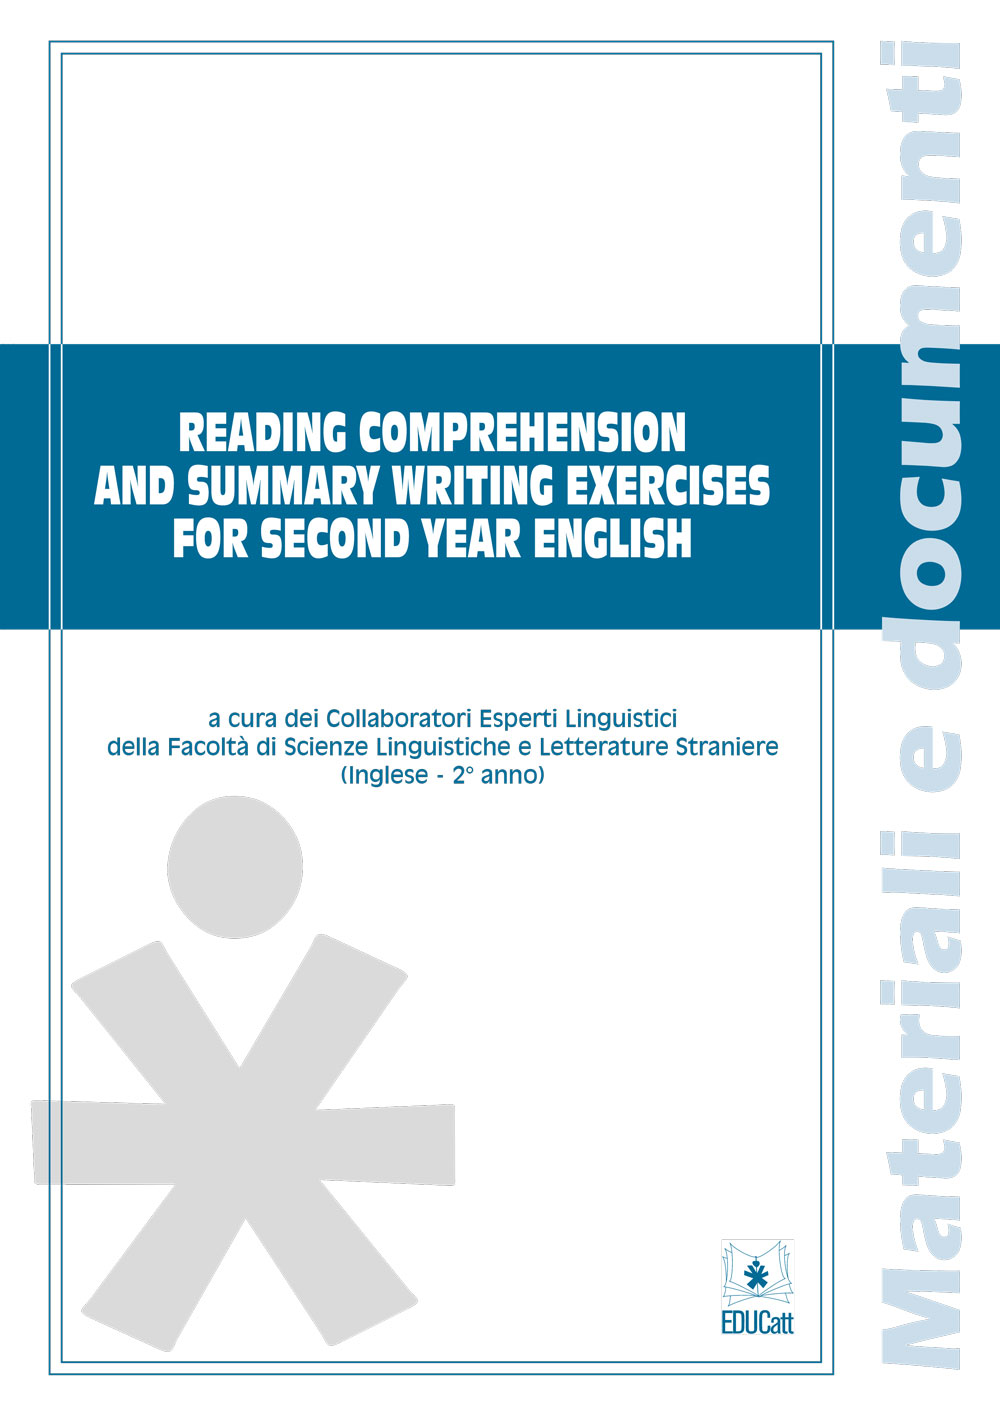 READING COMPREHENSION AND SUMMARY WRITING EXERCISES FOR SECOND YEAR ENGLISH